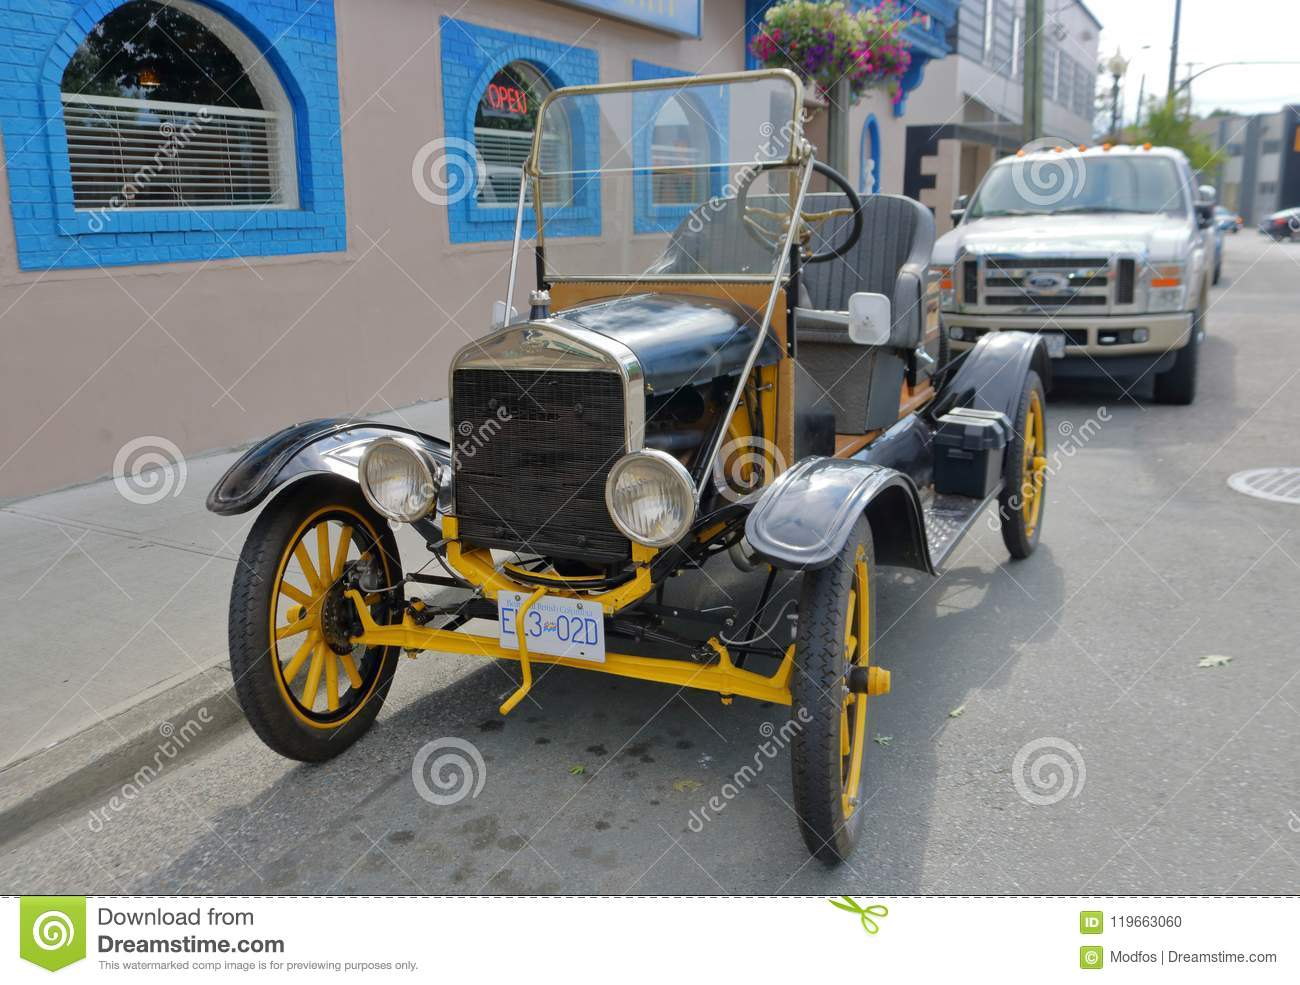 Kit Car Replica Of Ford Model T Editorial Image Image Of Head Ford 119663060